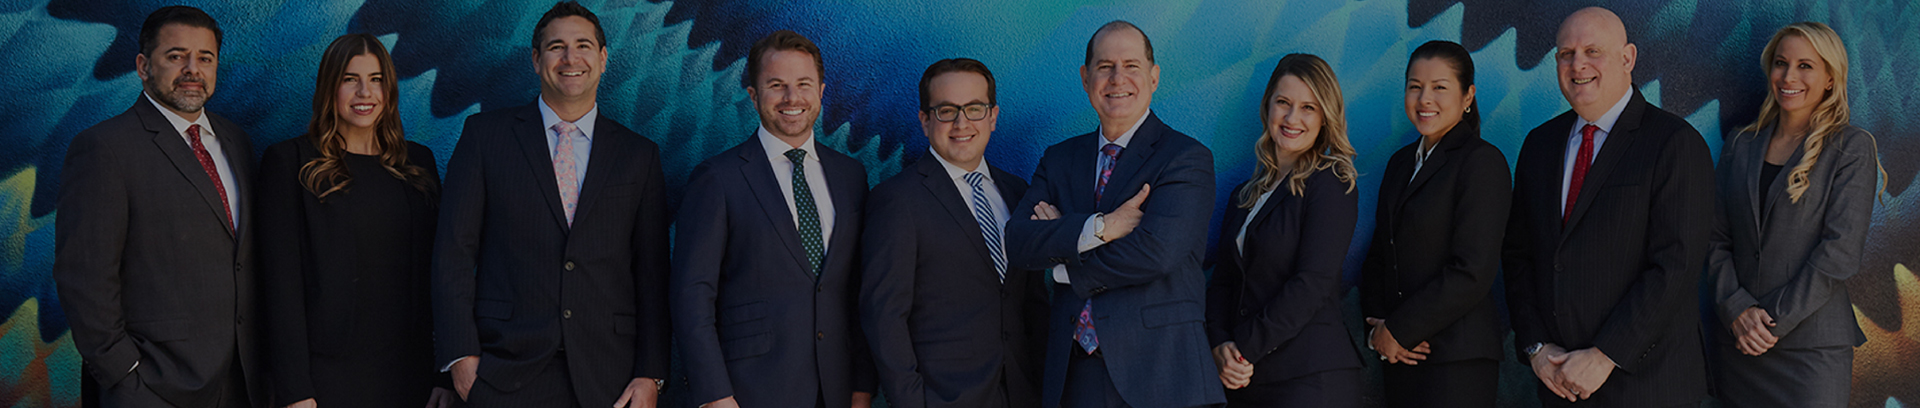 Haber Law, a boutique law firm in Miami